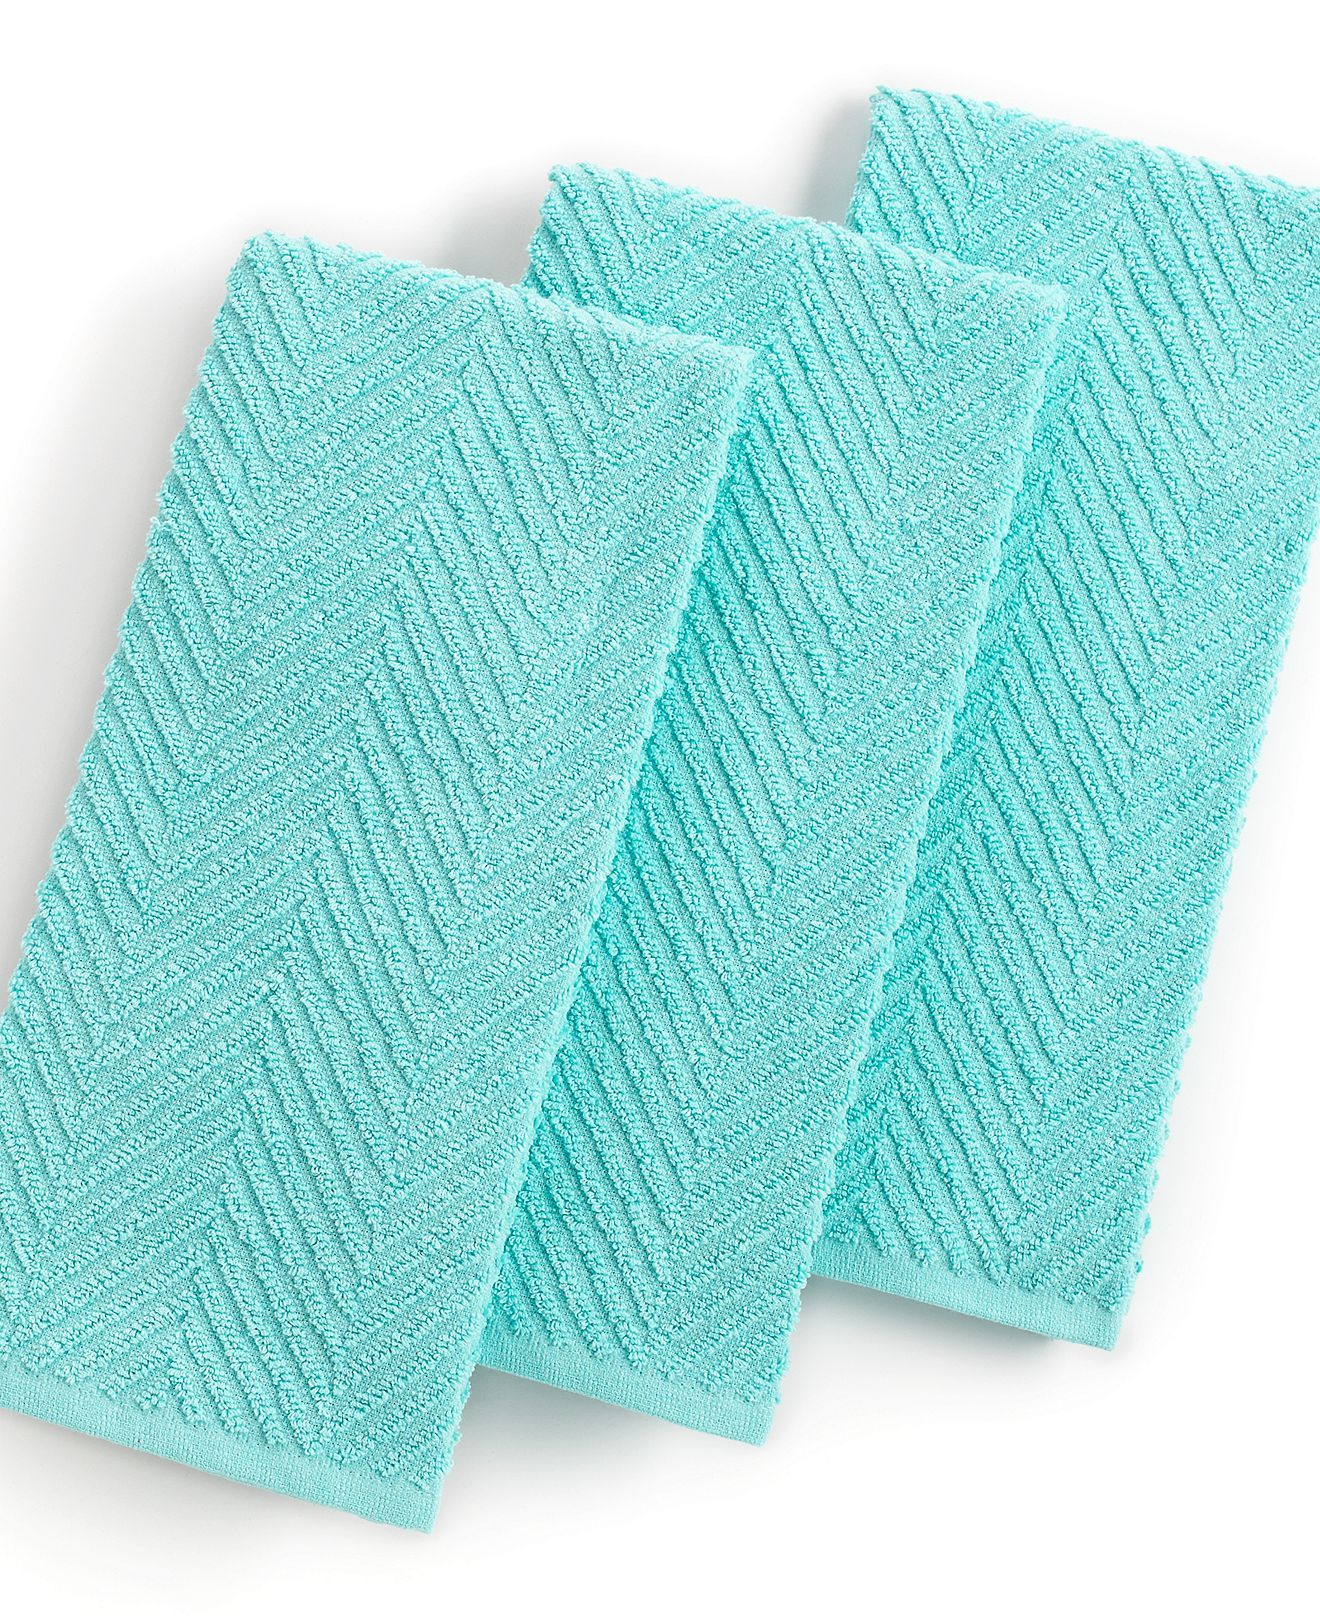 Martha Stewart Kitchen Towels: Martha Stewart Collection Kitchen Towels, Set Of 3